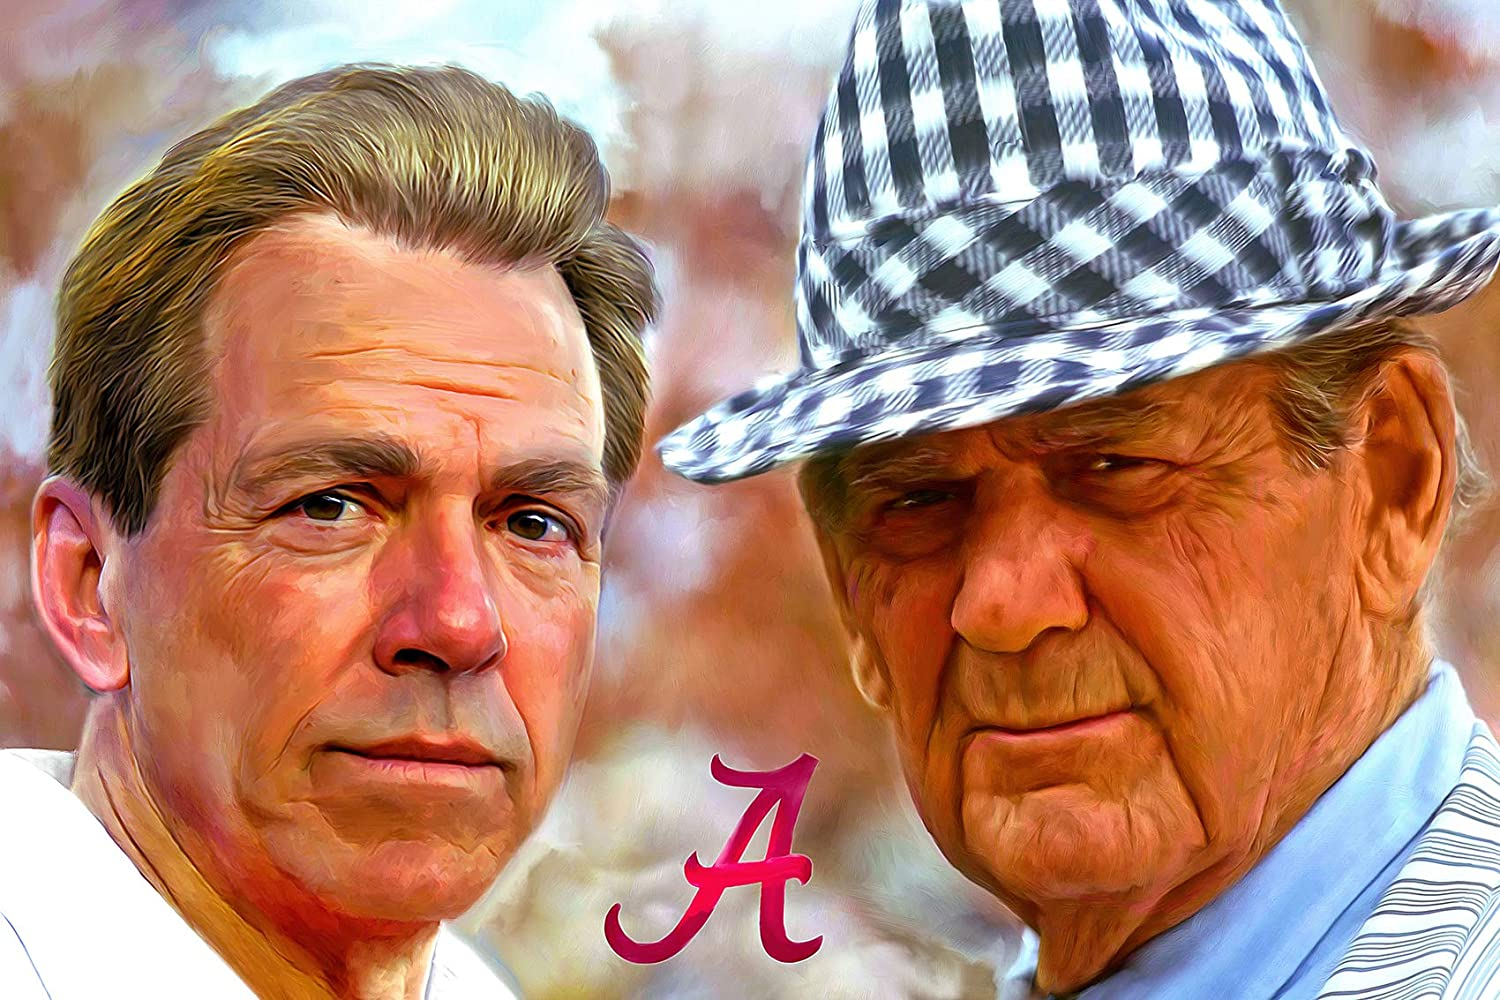 Signed Alabama Football Crimson Tide 11x17 Art Print Featuring Nick Saban and Paul Bear Bryant by Mark Spears